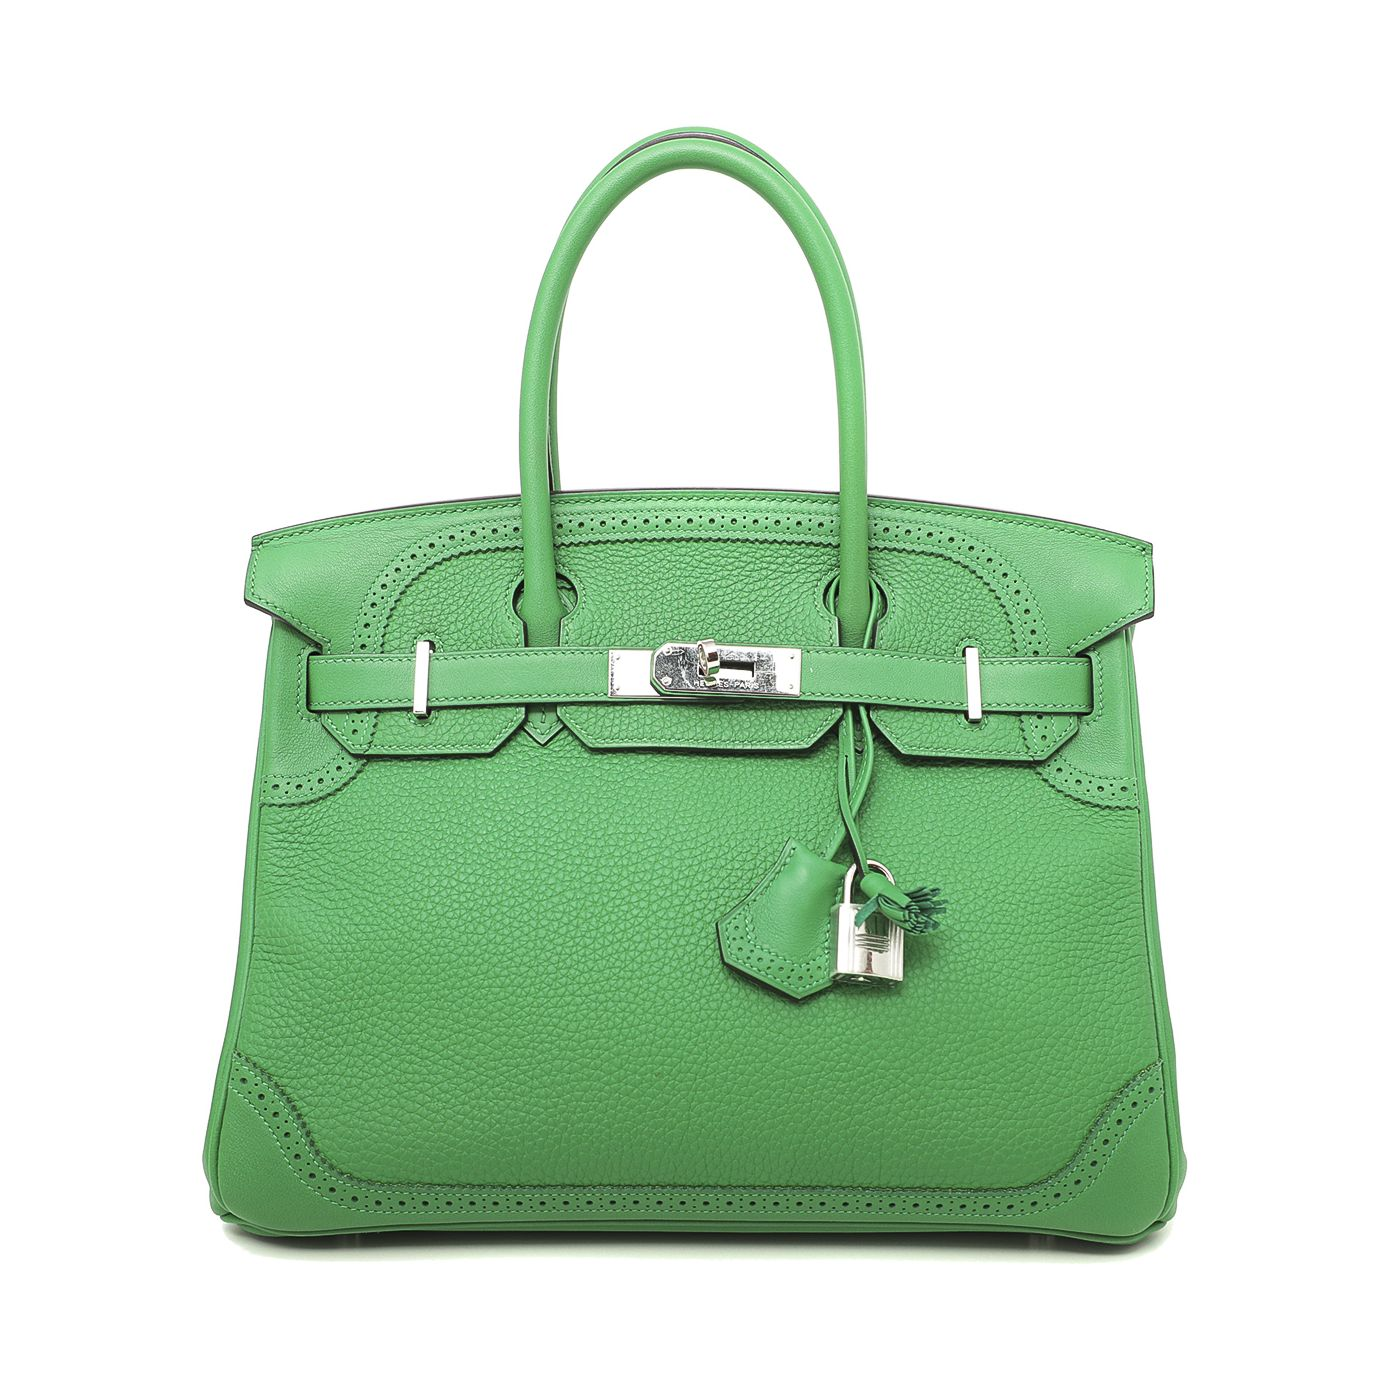 Hermes Bamboo Birkin Ghillies 30 Limited